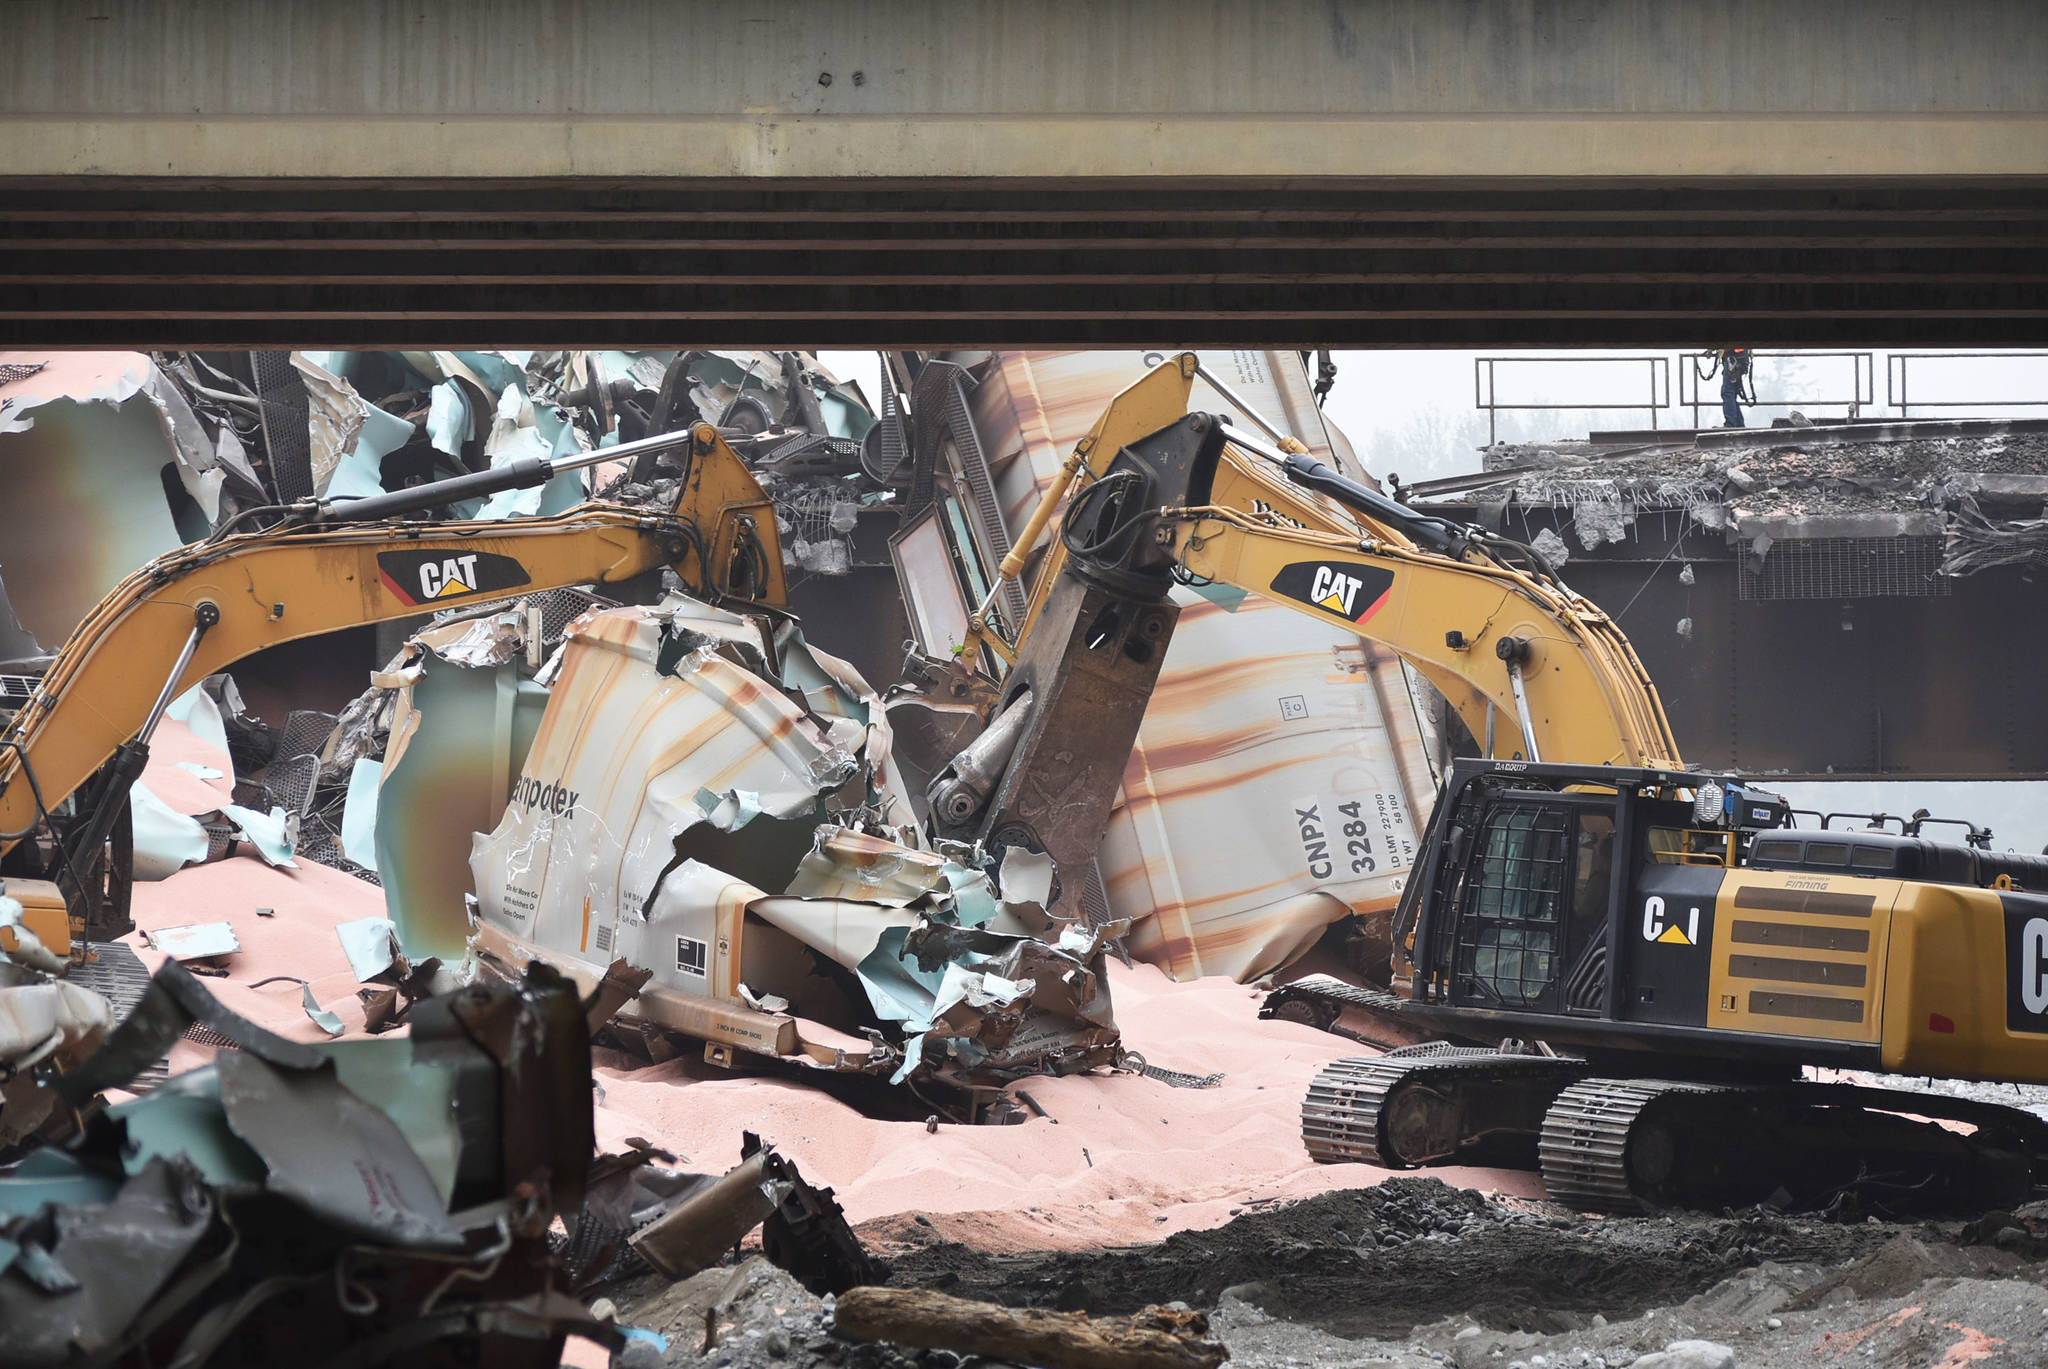 Heavy machinery was used to dismantle and moved the wreckage from approximately 60 rail cars involved in a crash Sept. 14. (Emelie Peacock/Hope Standard)